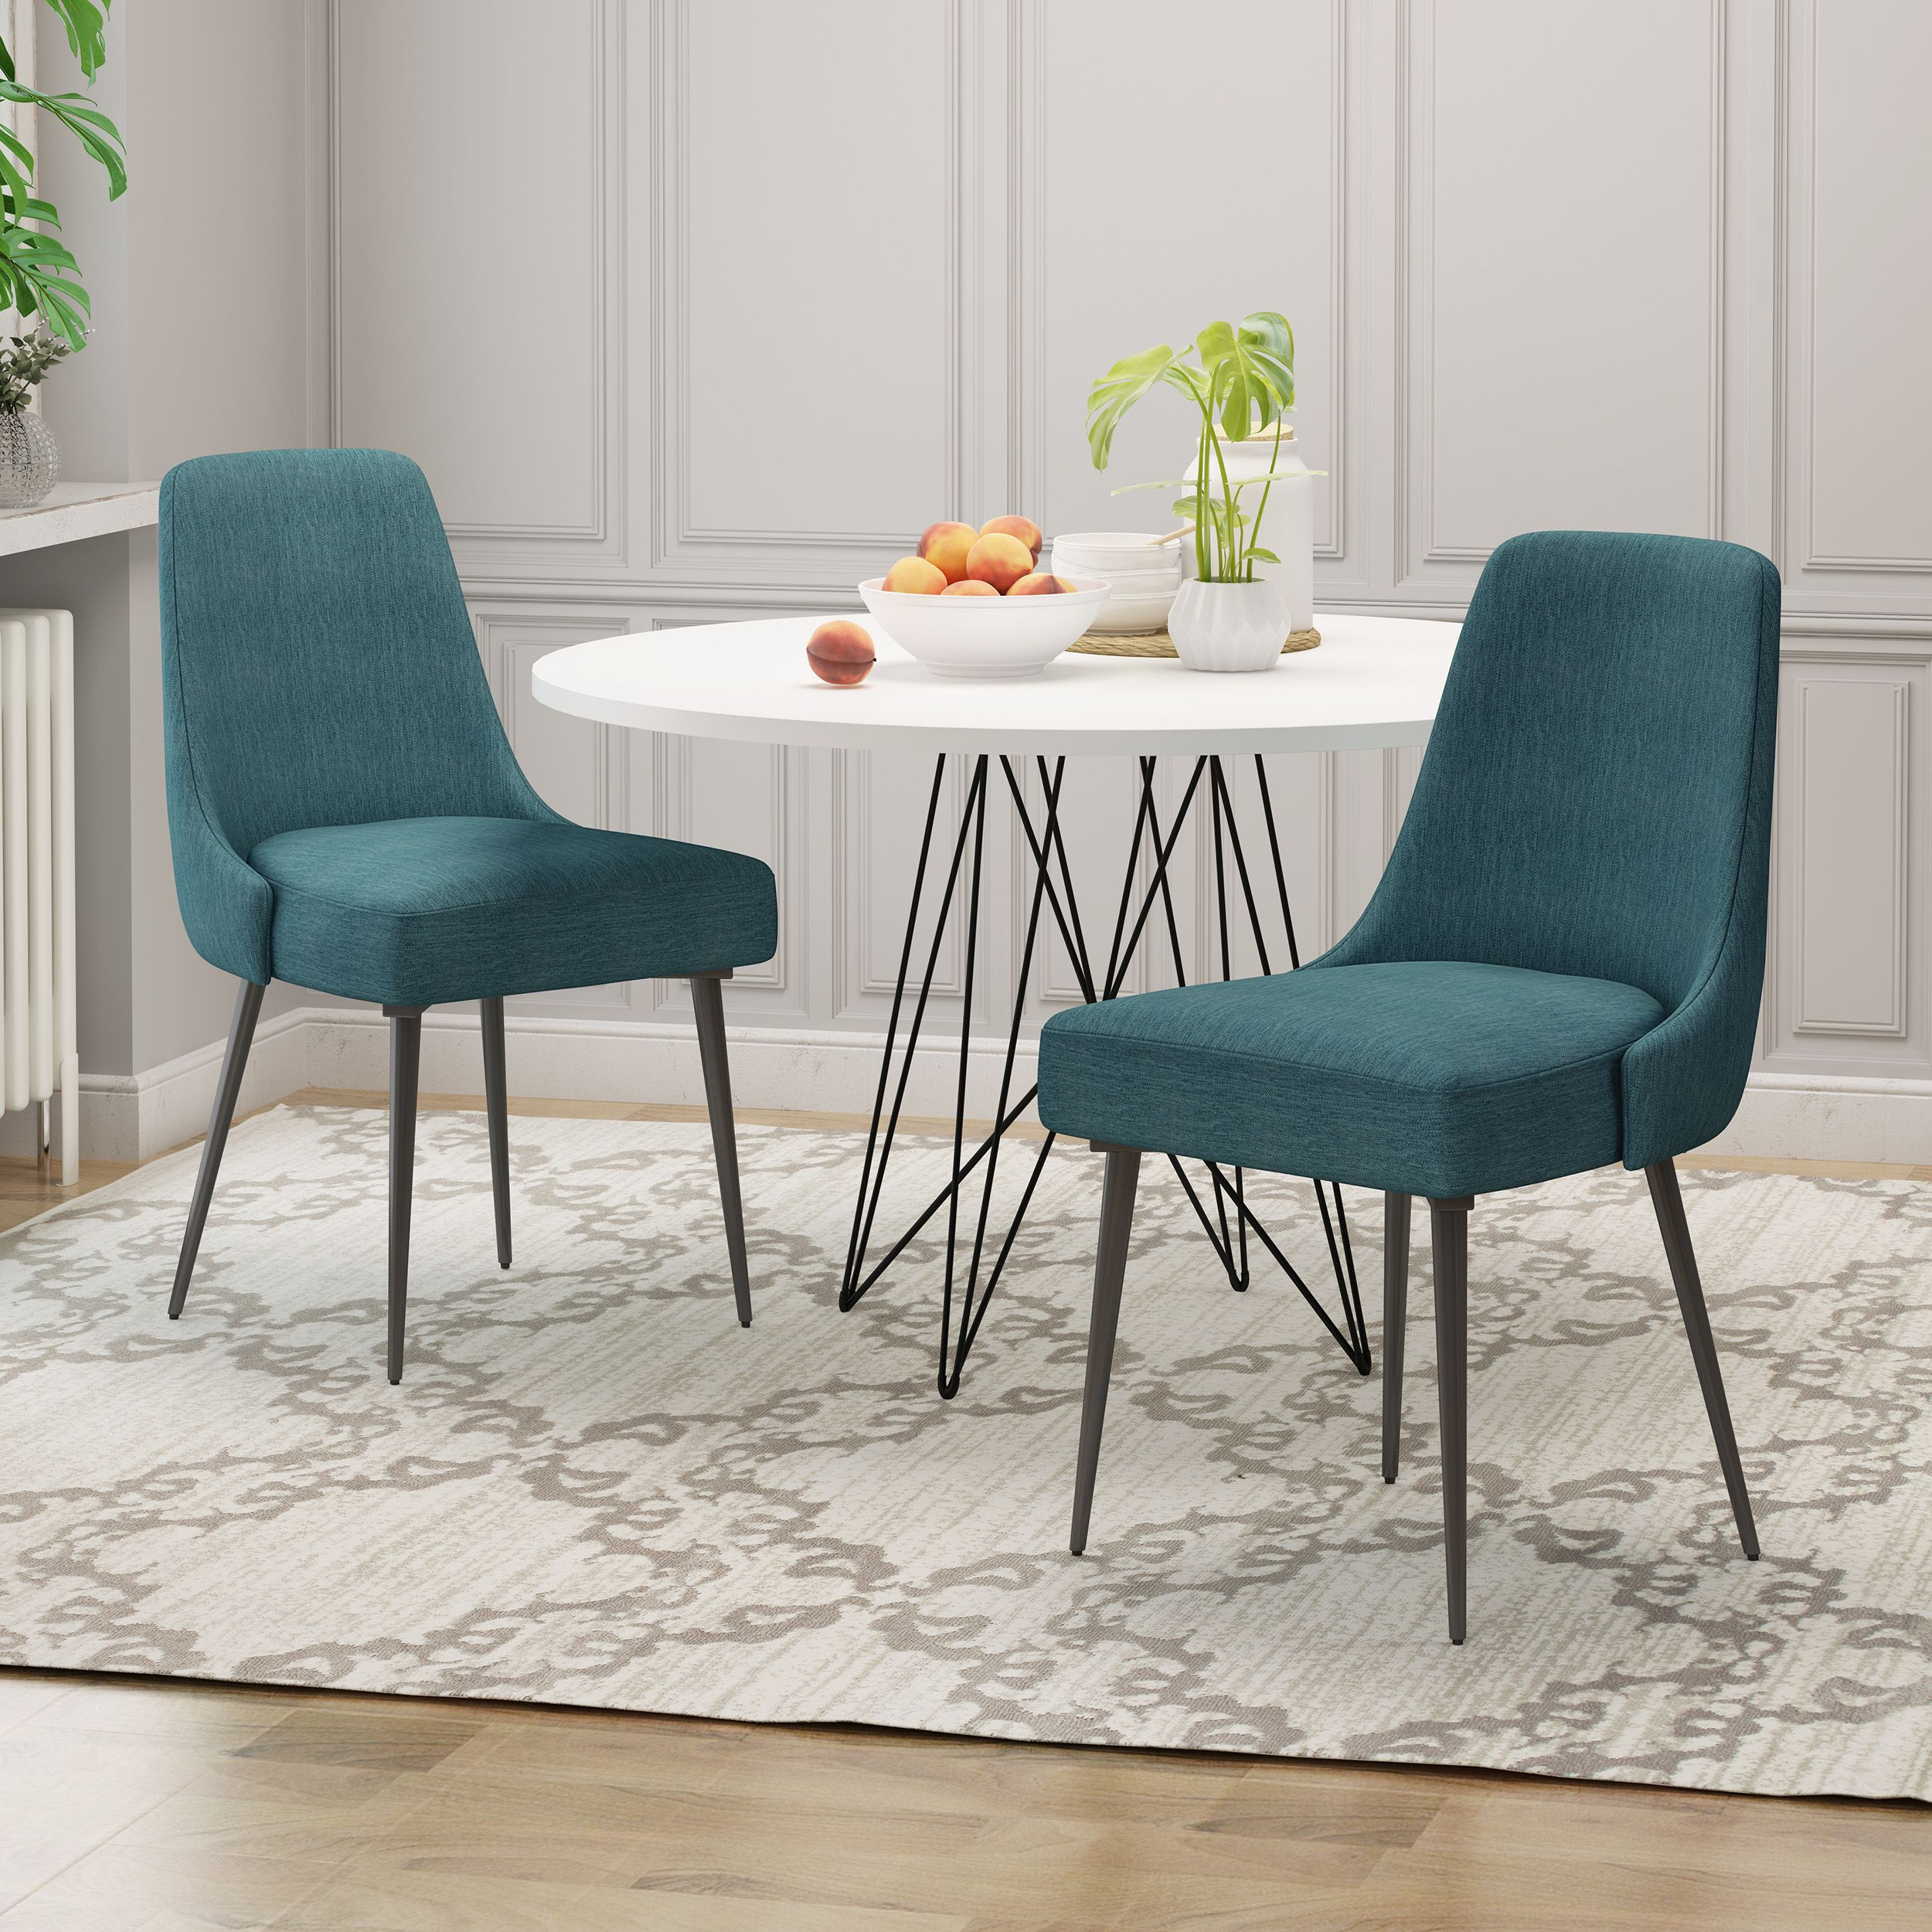 Ella Modern Fabric Dining Chairs Set Of 2 Fabric Dining Chairs Dining Chairs Modern Fabric Dining Chairs